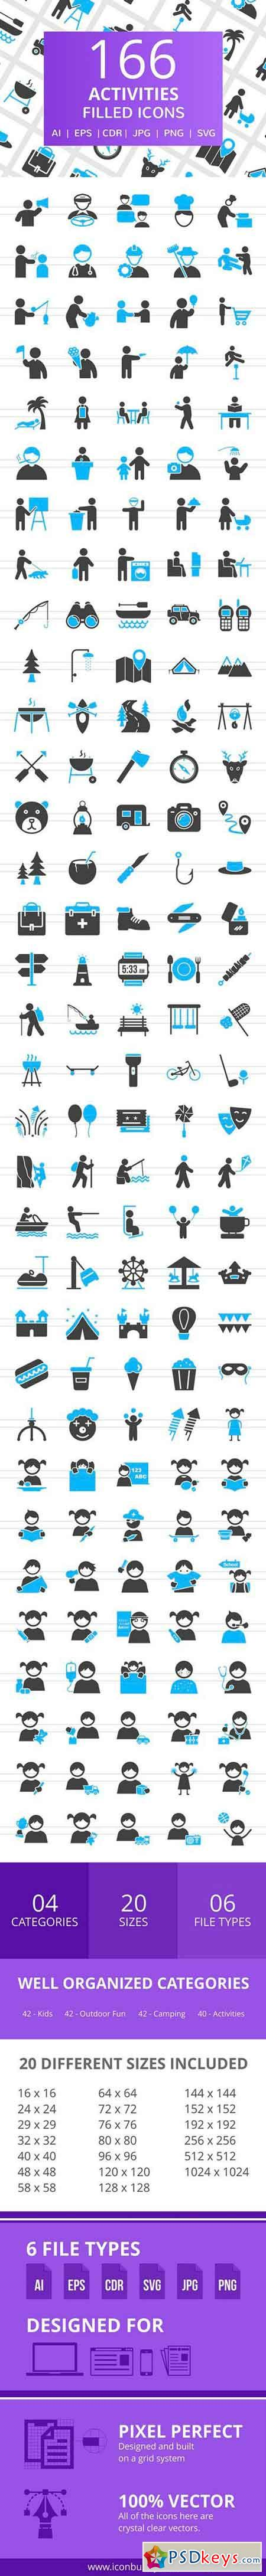 166 Activities Filled Icons 2517286